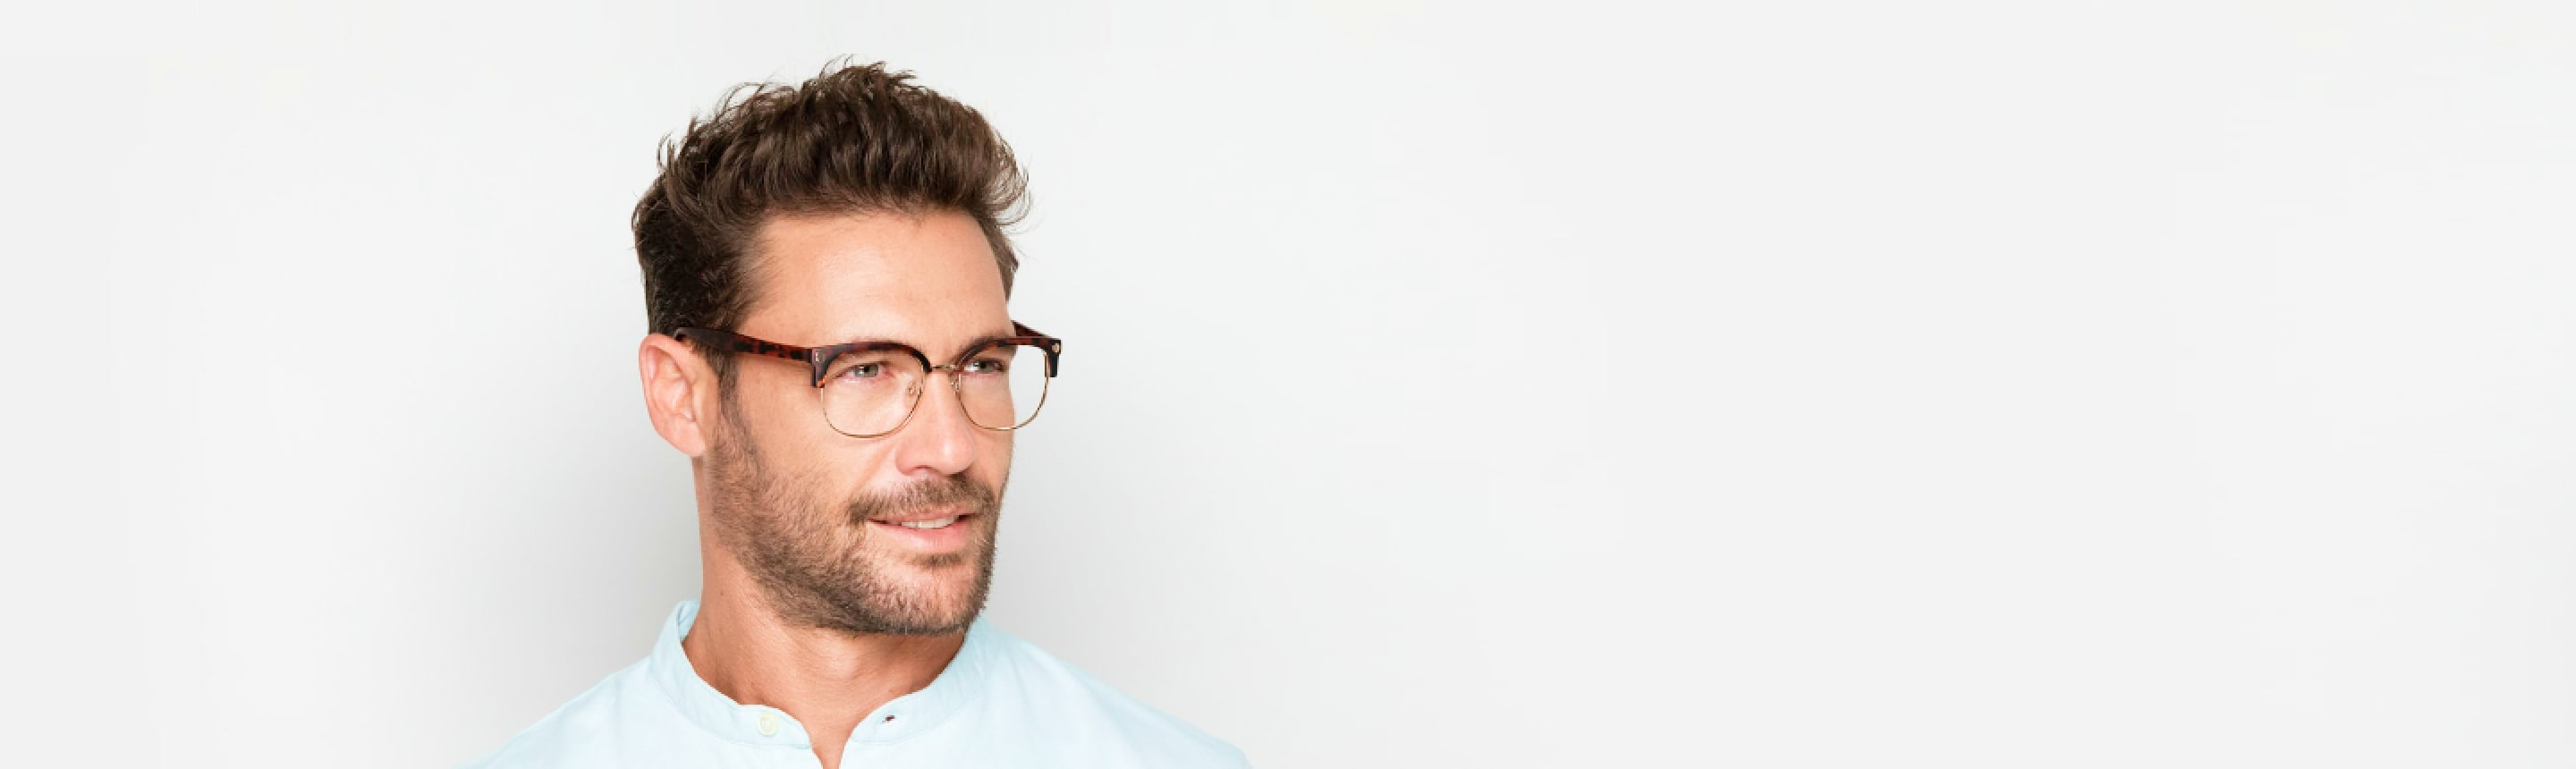 try on glasses at home right